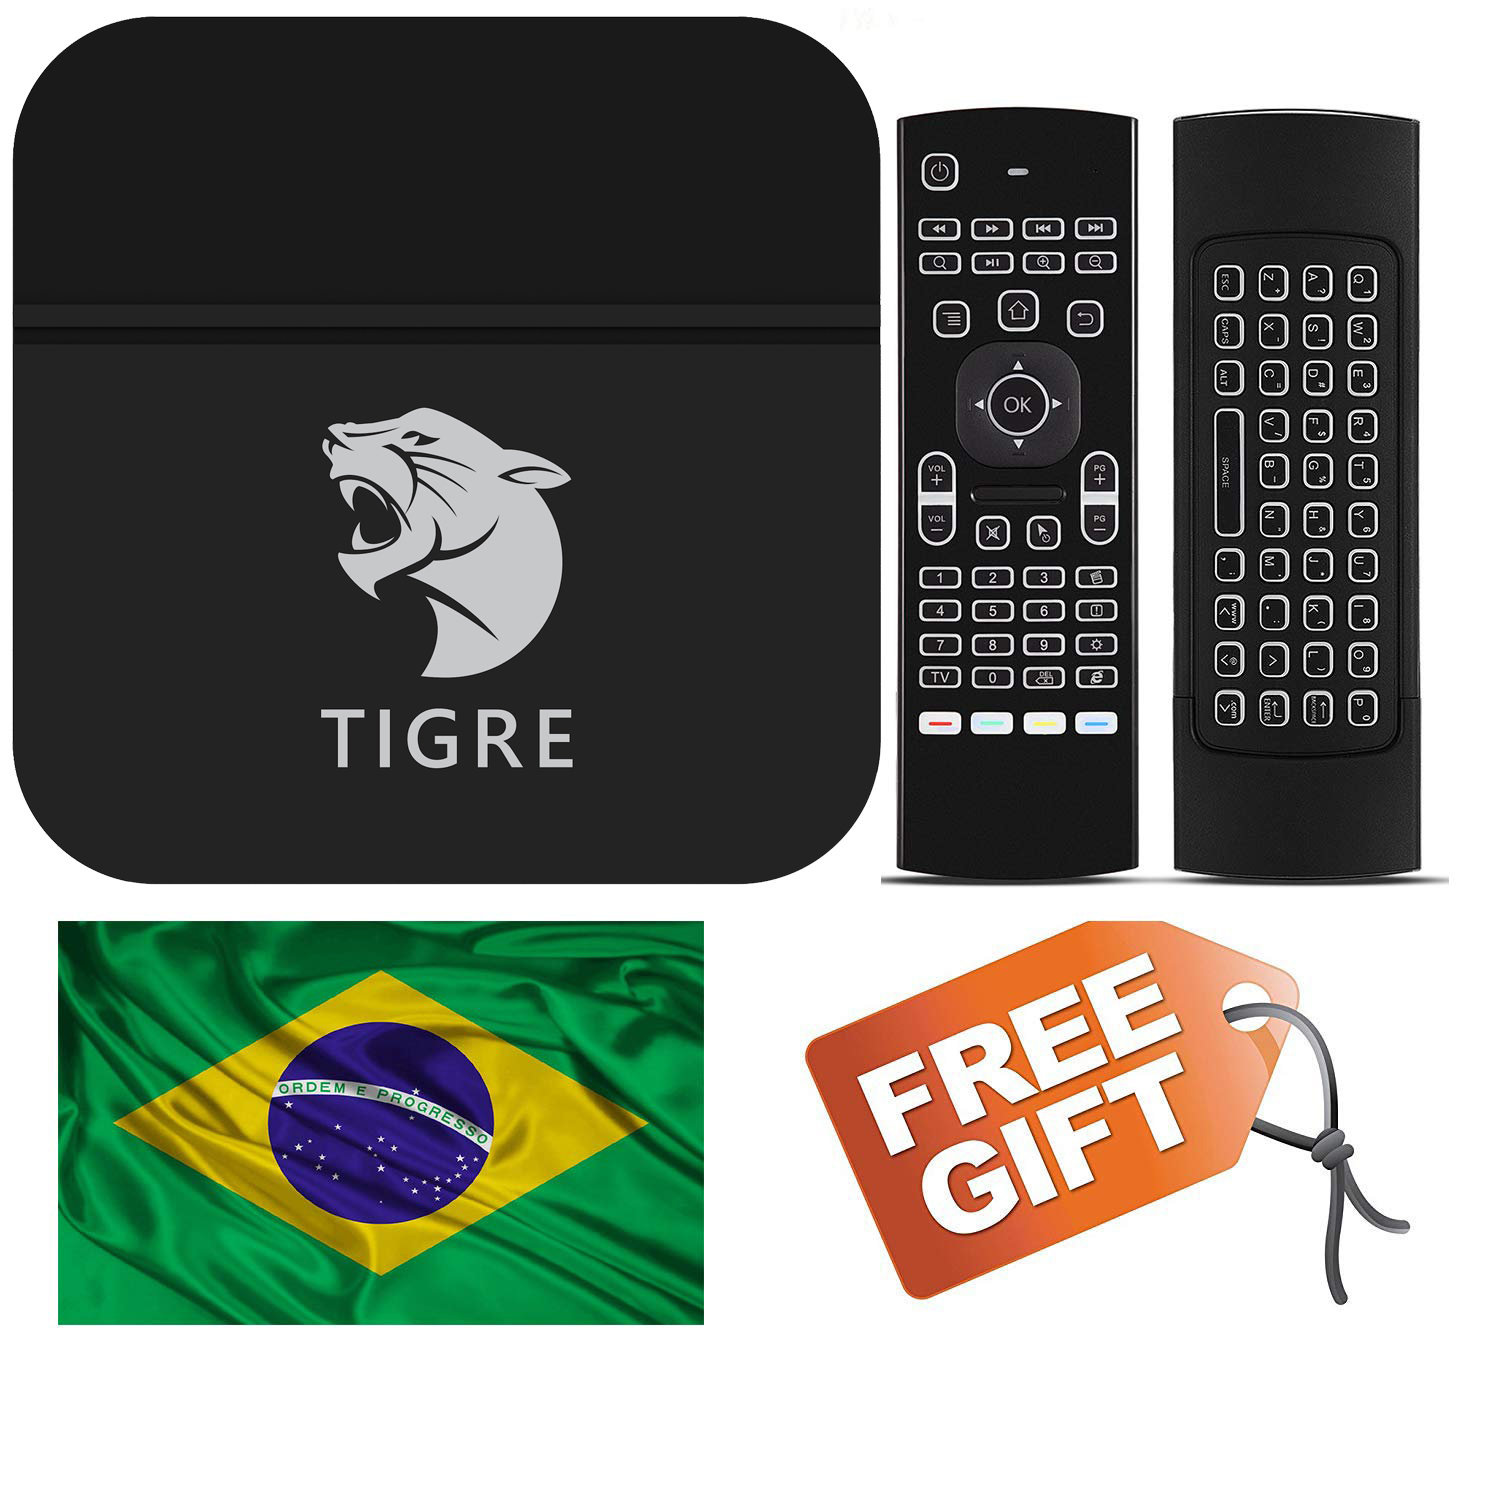 2019 Newest Htv Tigre Brazil Box A2 Based on HTV6+, IPTV5 HTV5 HTV 5  Updated,ao | bomix-android-tv-box